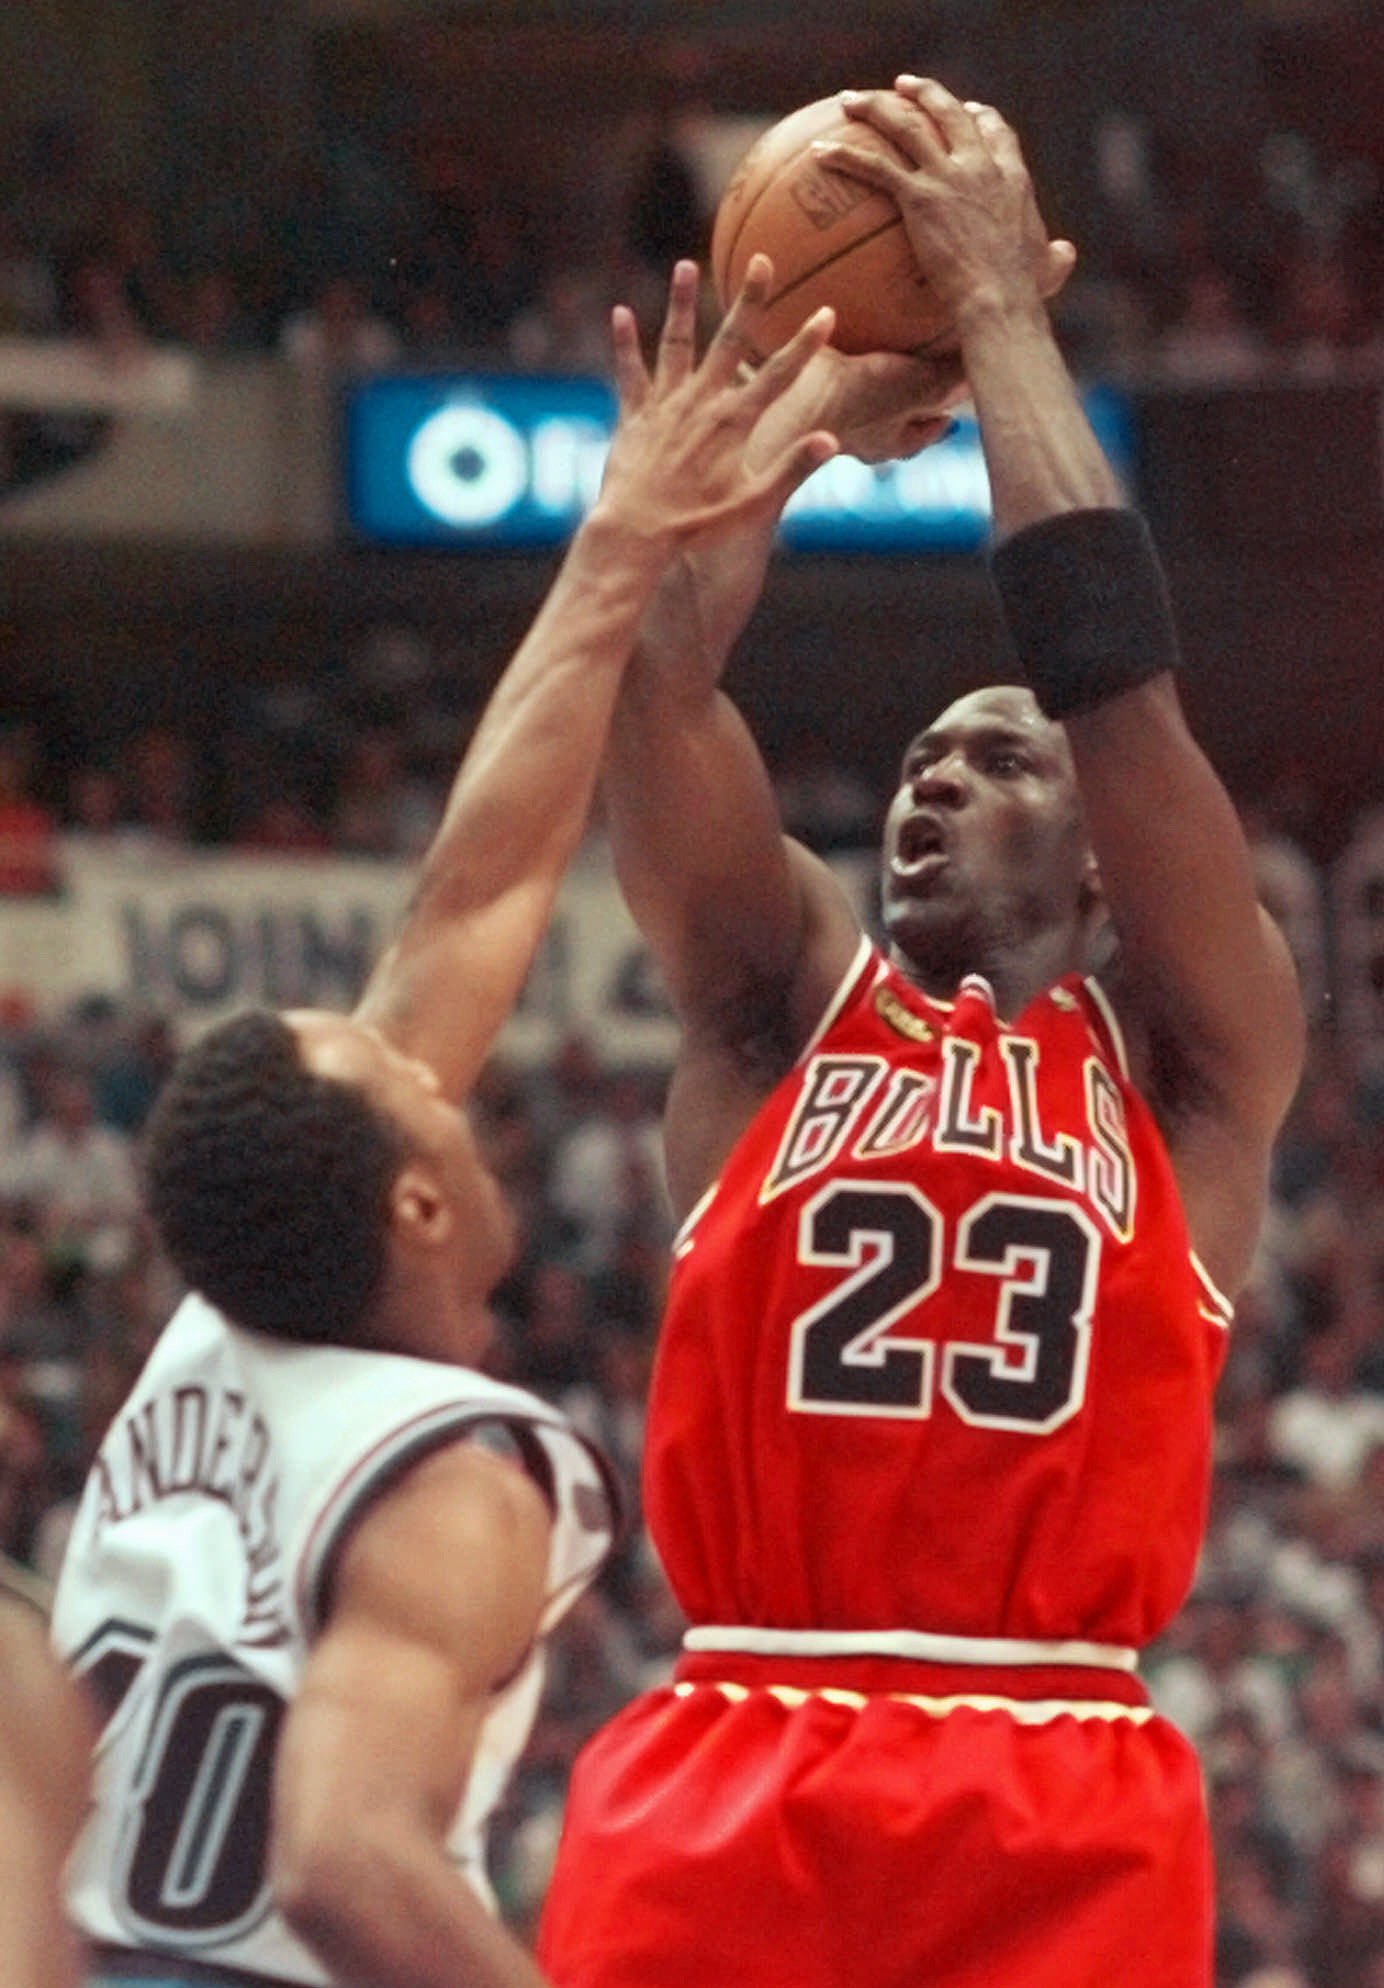 Michael Jordan shoots over the Utah Jazz's Shandon Anderson in Game 6 of the 1998 NBA Finals.